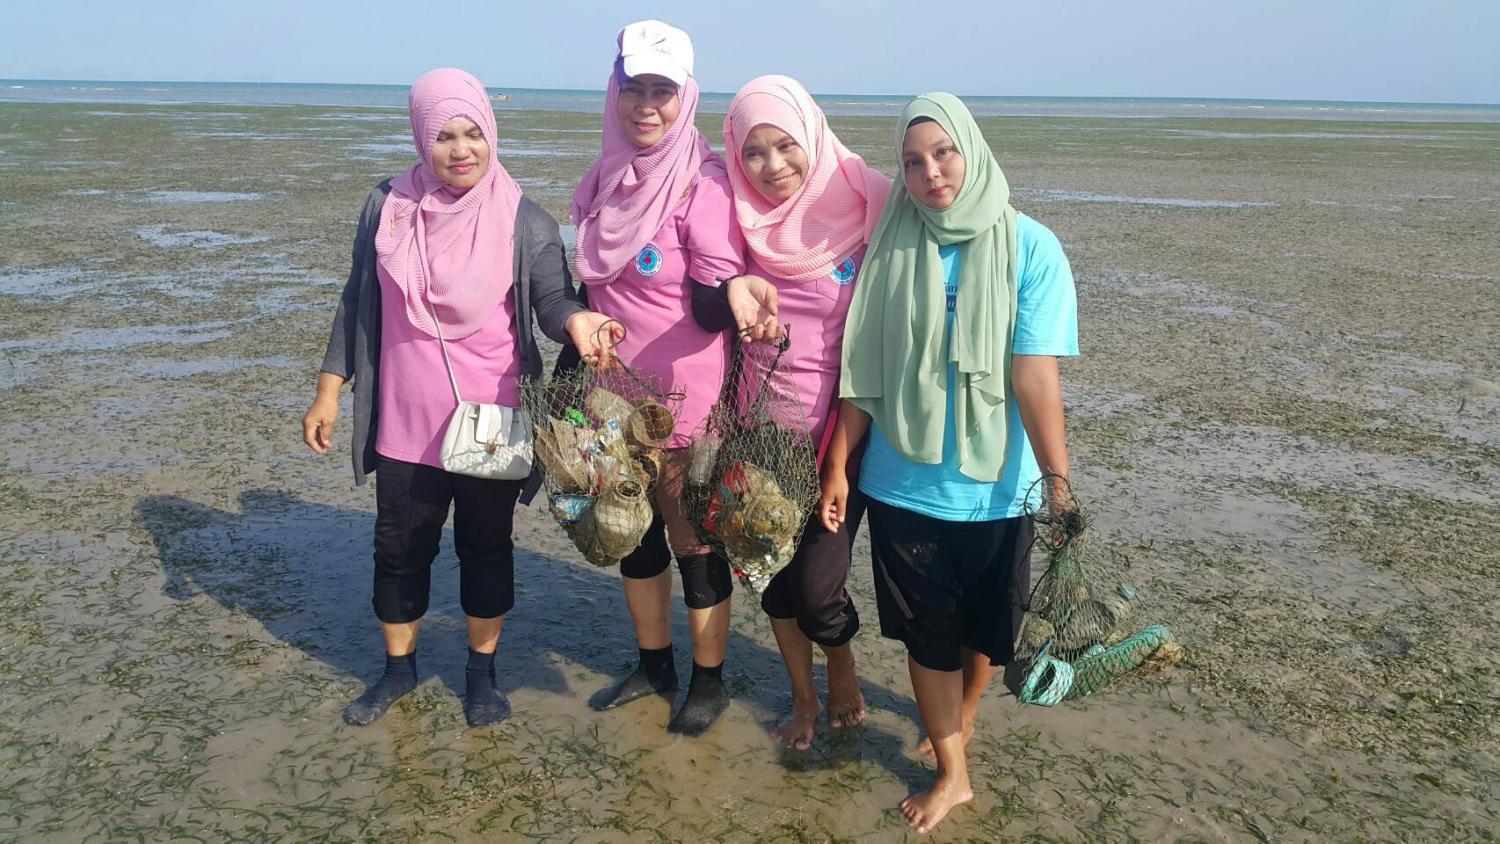 Villagers on Koh Libong gather to collect plastic garbage from seagrass meadows. Dumrongkiat Mala